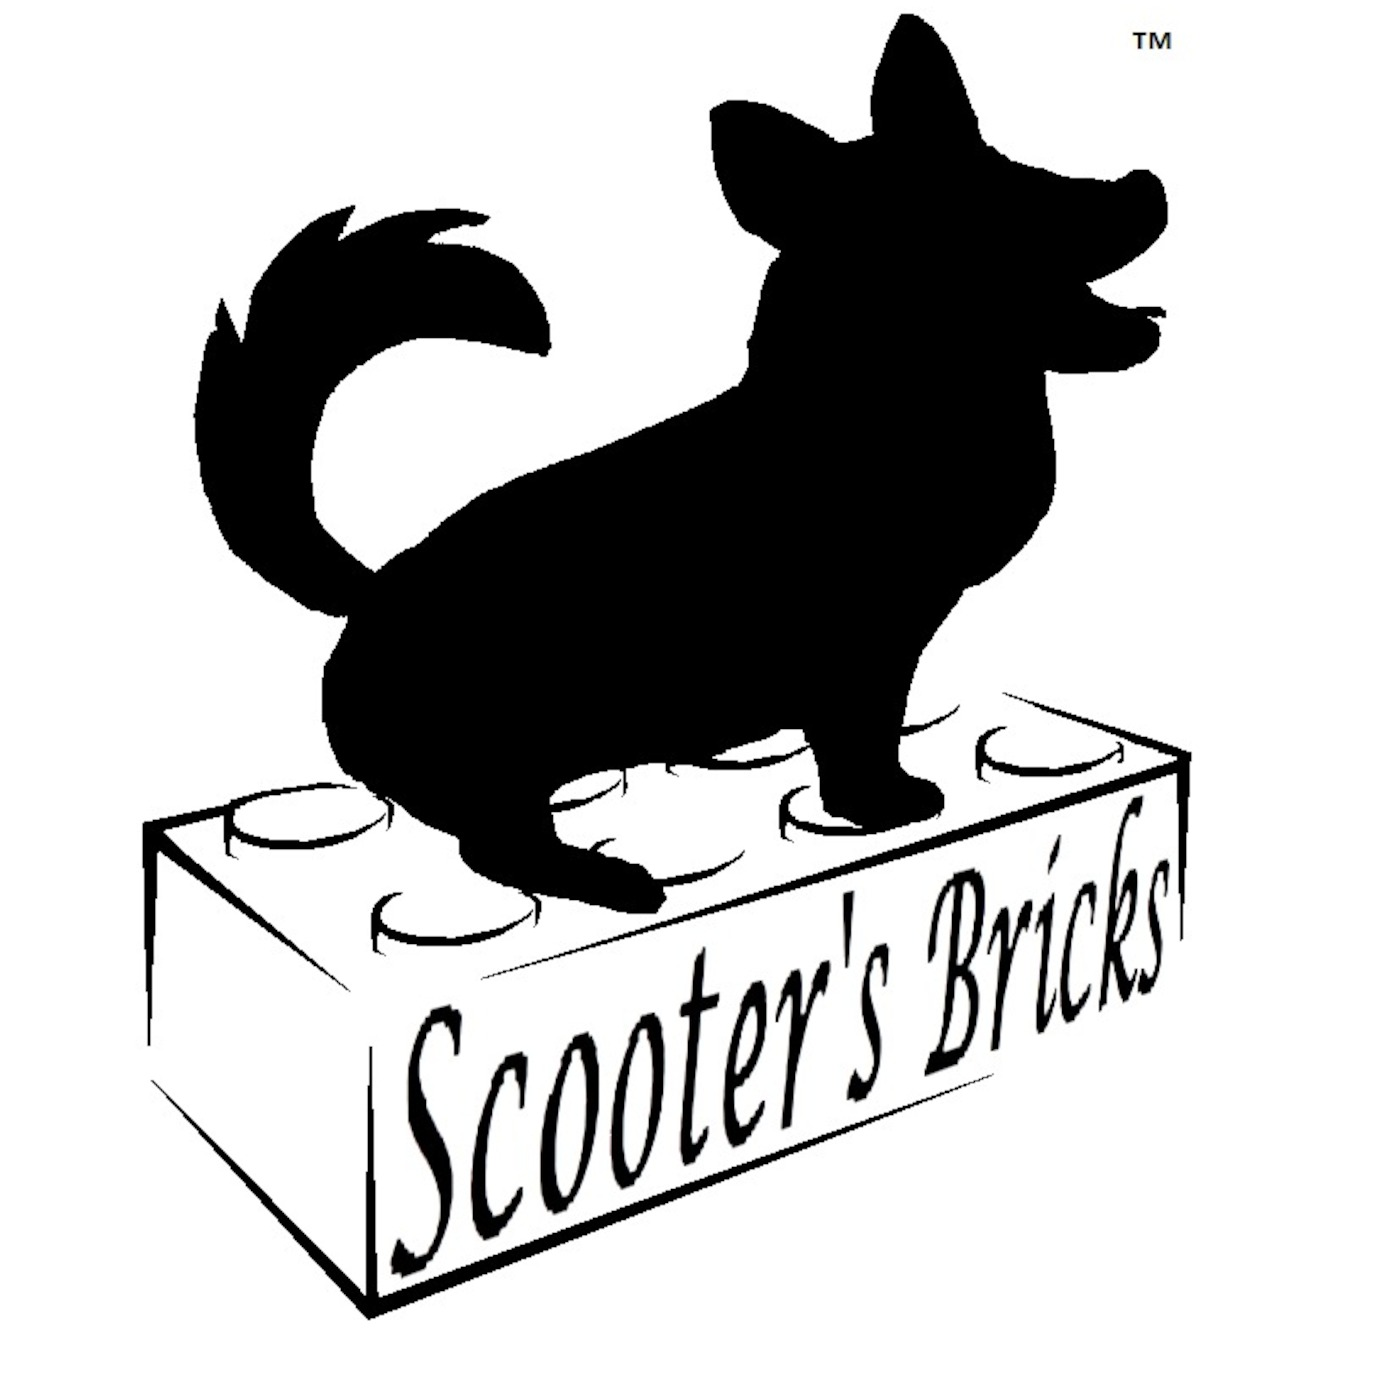 Scooter's Bricks